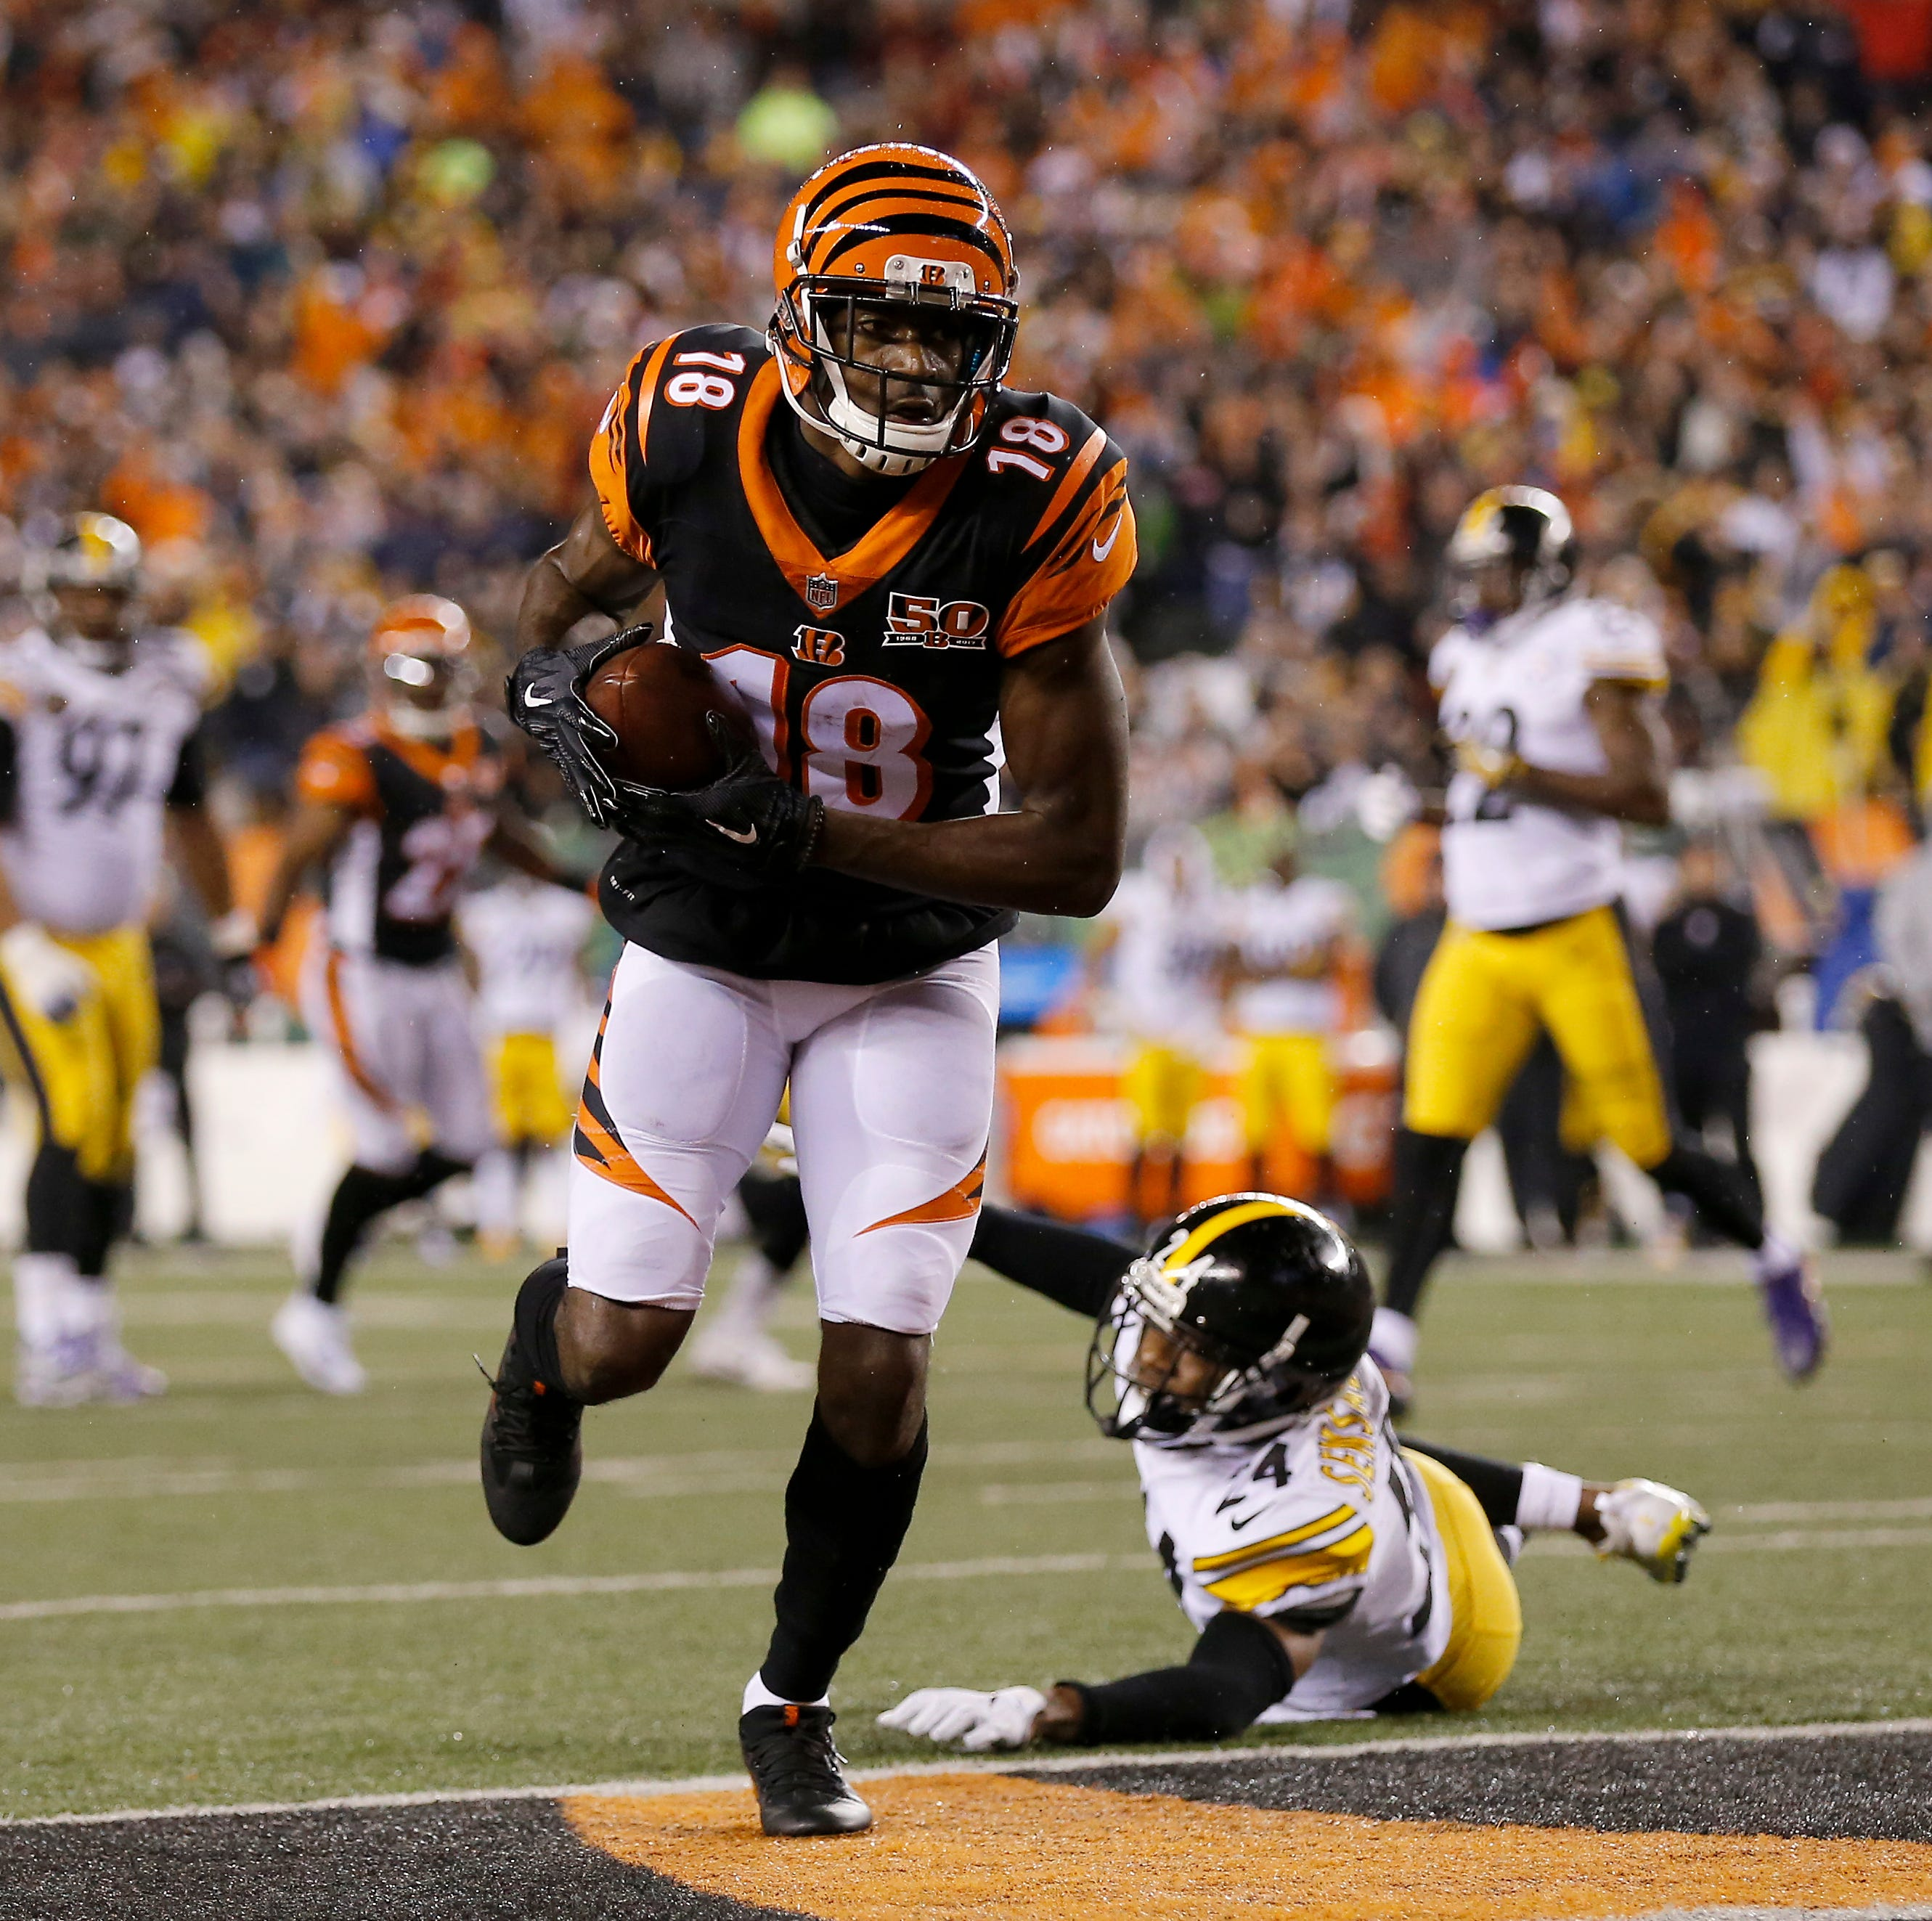 Walkthru: Odds are against the Bengals. Does it matter?